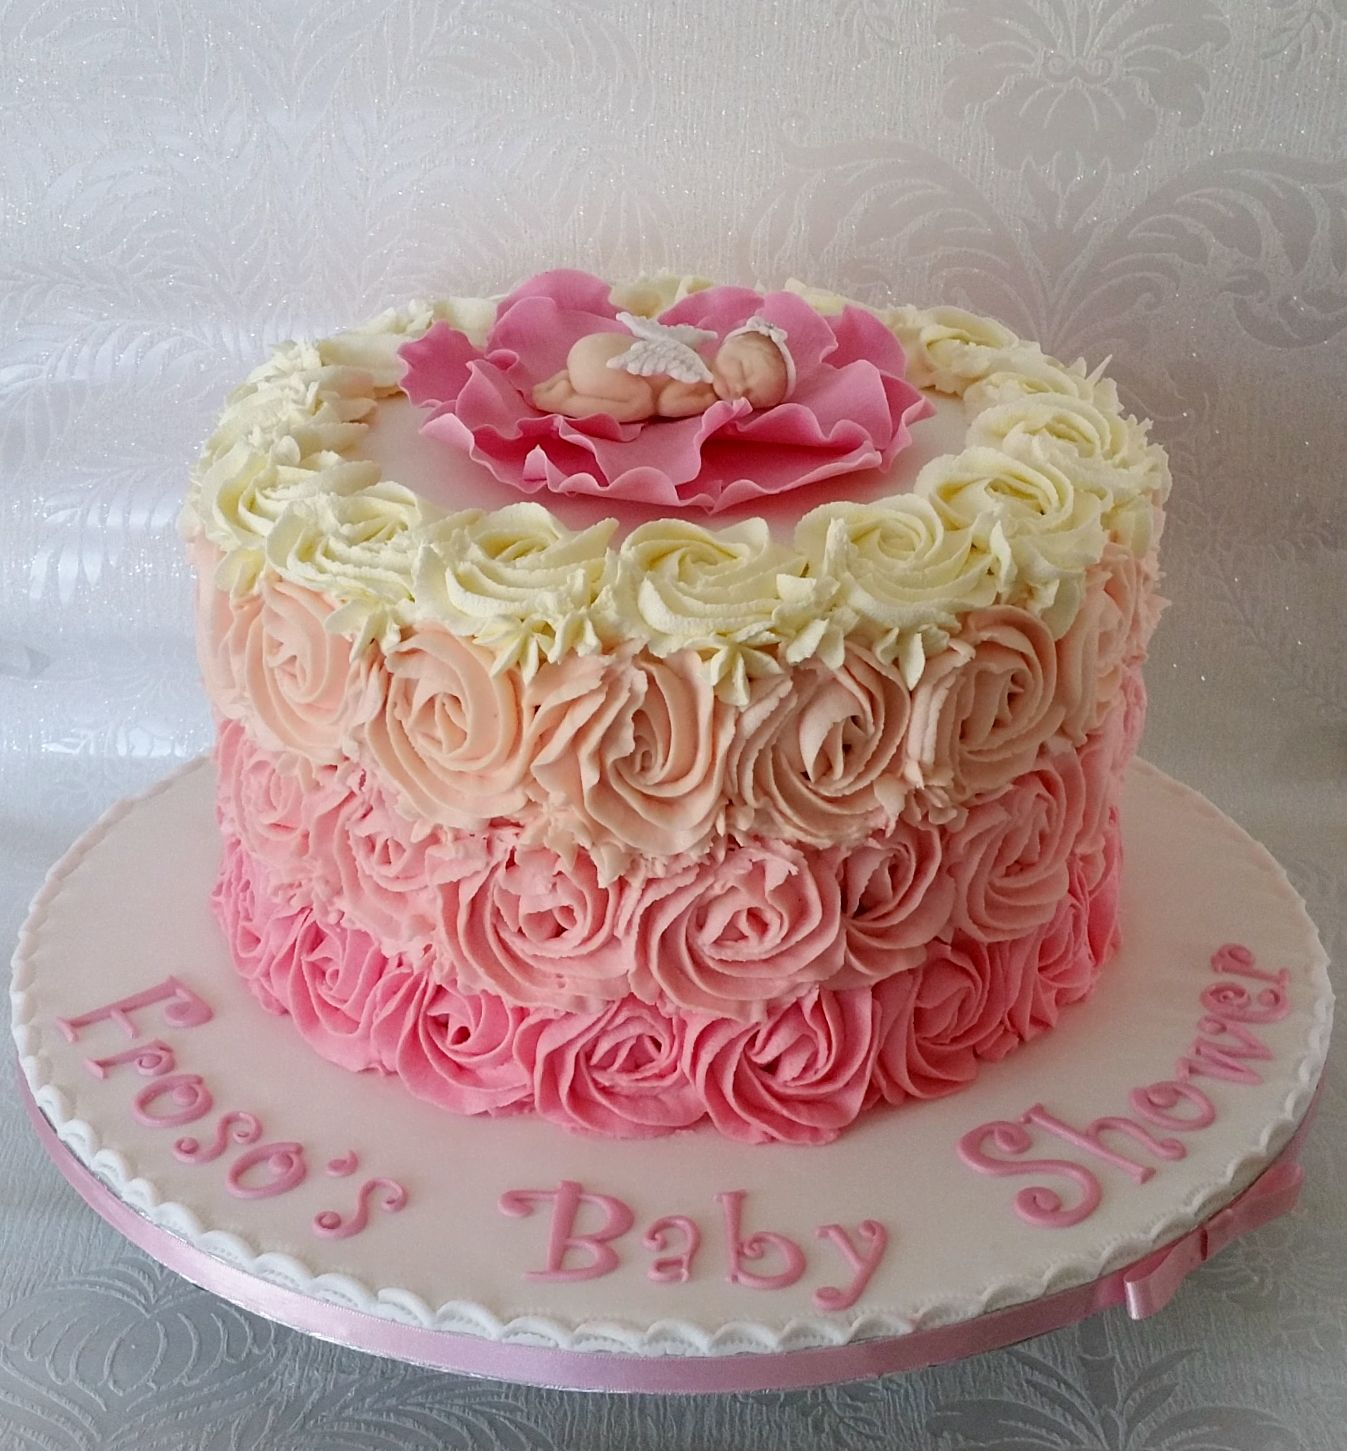 Flower Baby Shower Cake: Ombre Rose Piped Buttercream Effect Baby Shower Cake With